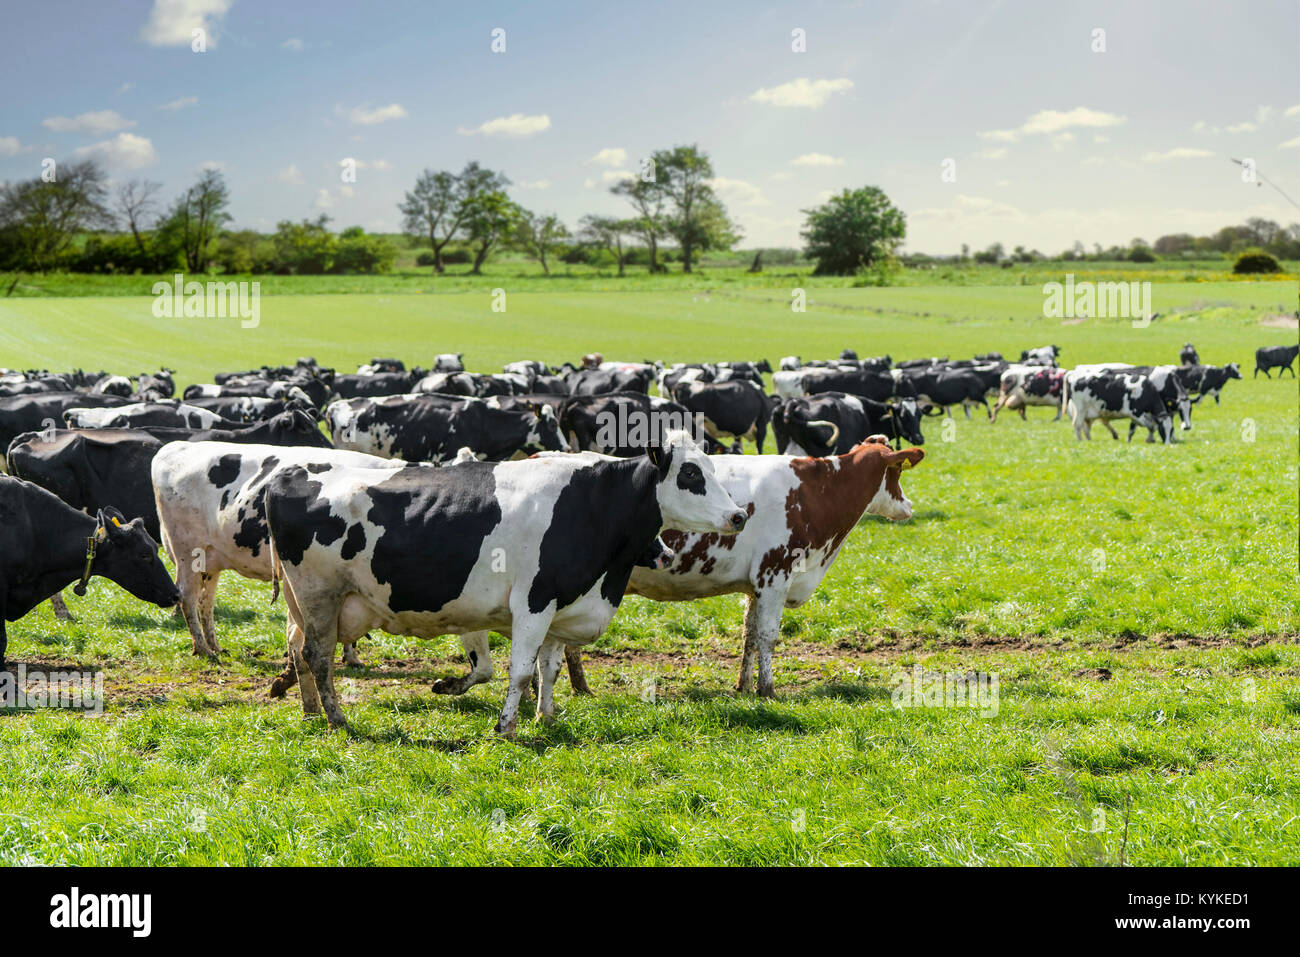 Group of cattle on a green field in the spring enjoying the sun and the fresh green grass - Stock Image